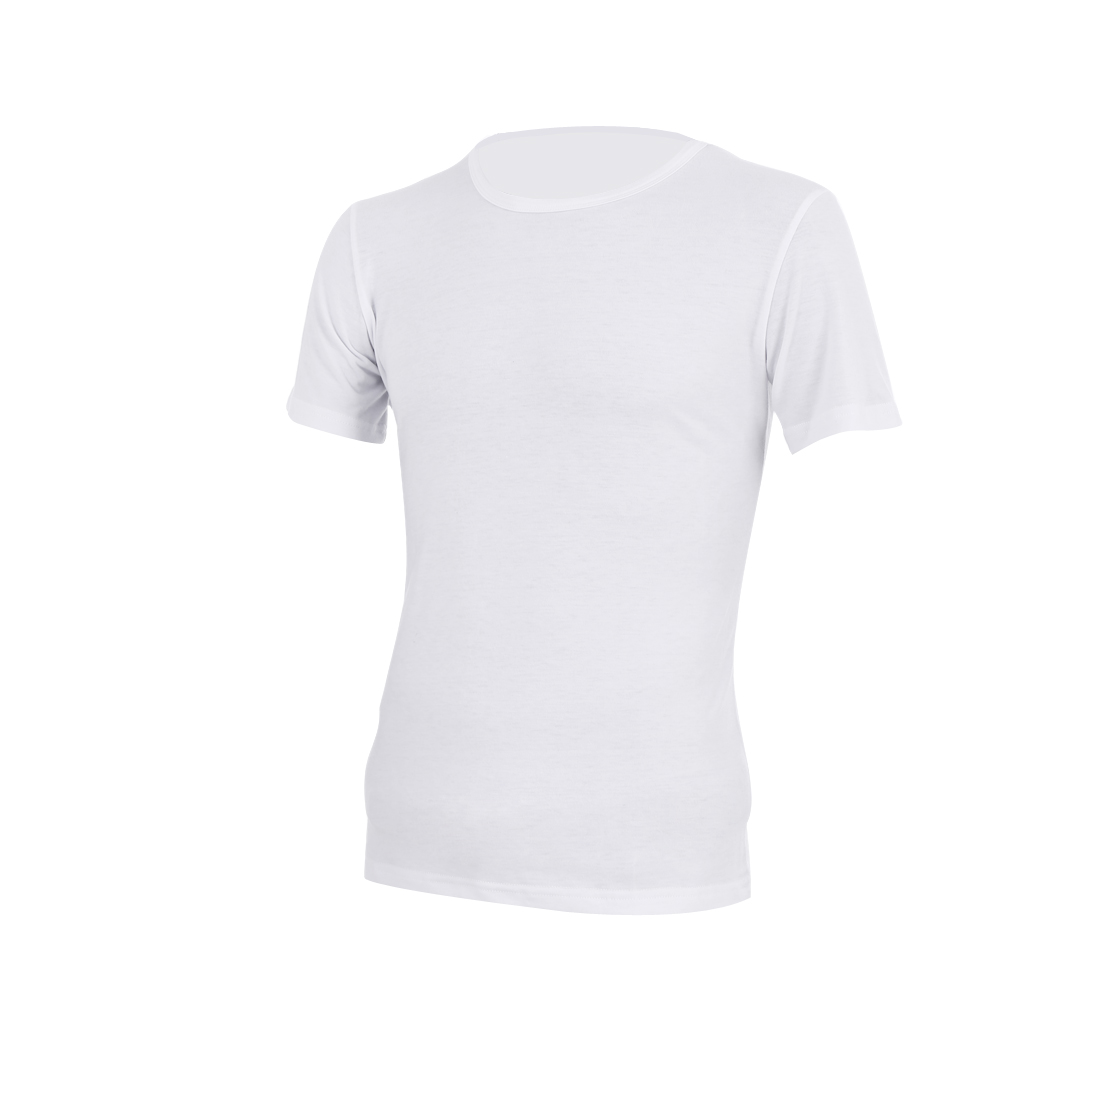 White M Short Sleeve Solid Color Style Stretchy Men Summer Shirt